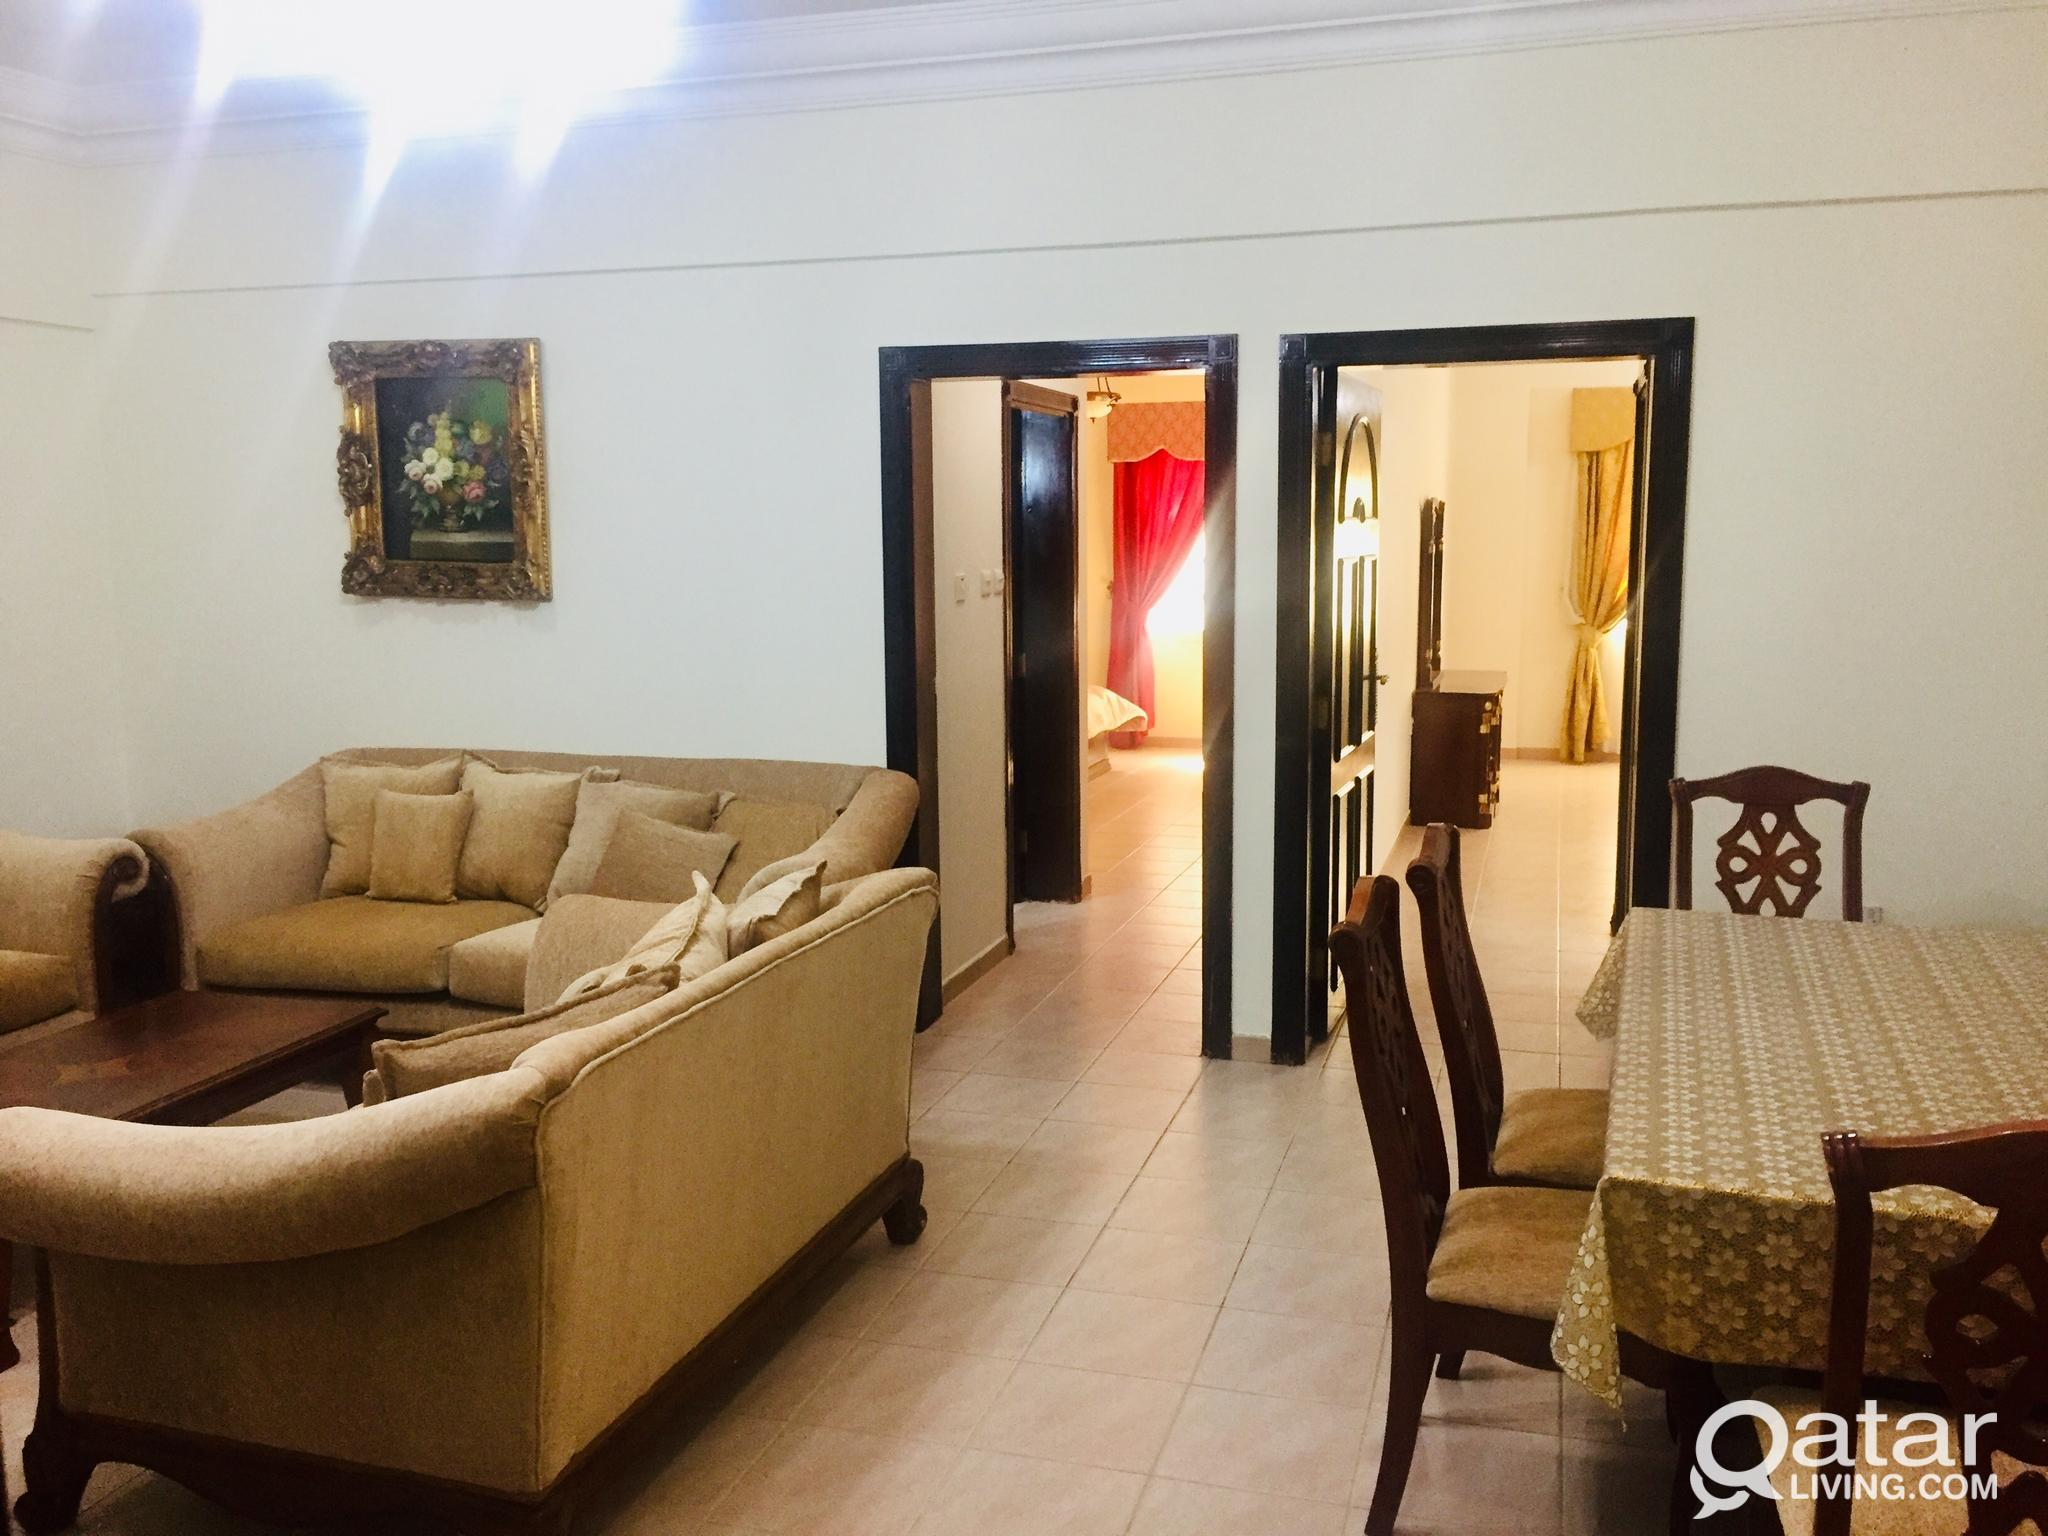 2-BHK Fully Furnished Apartment Near Toyota Signal